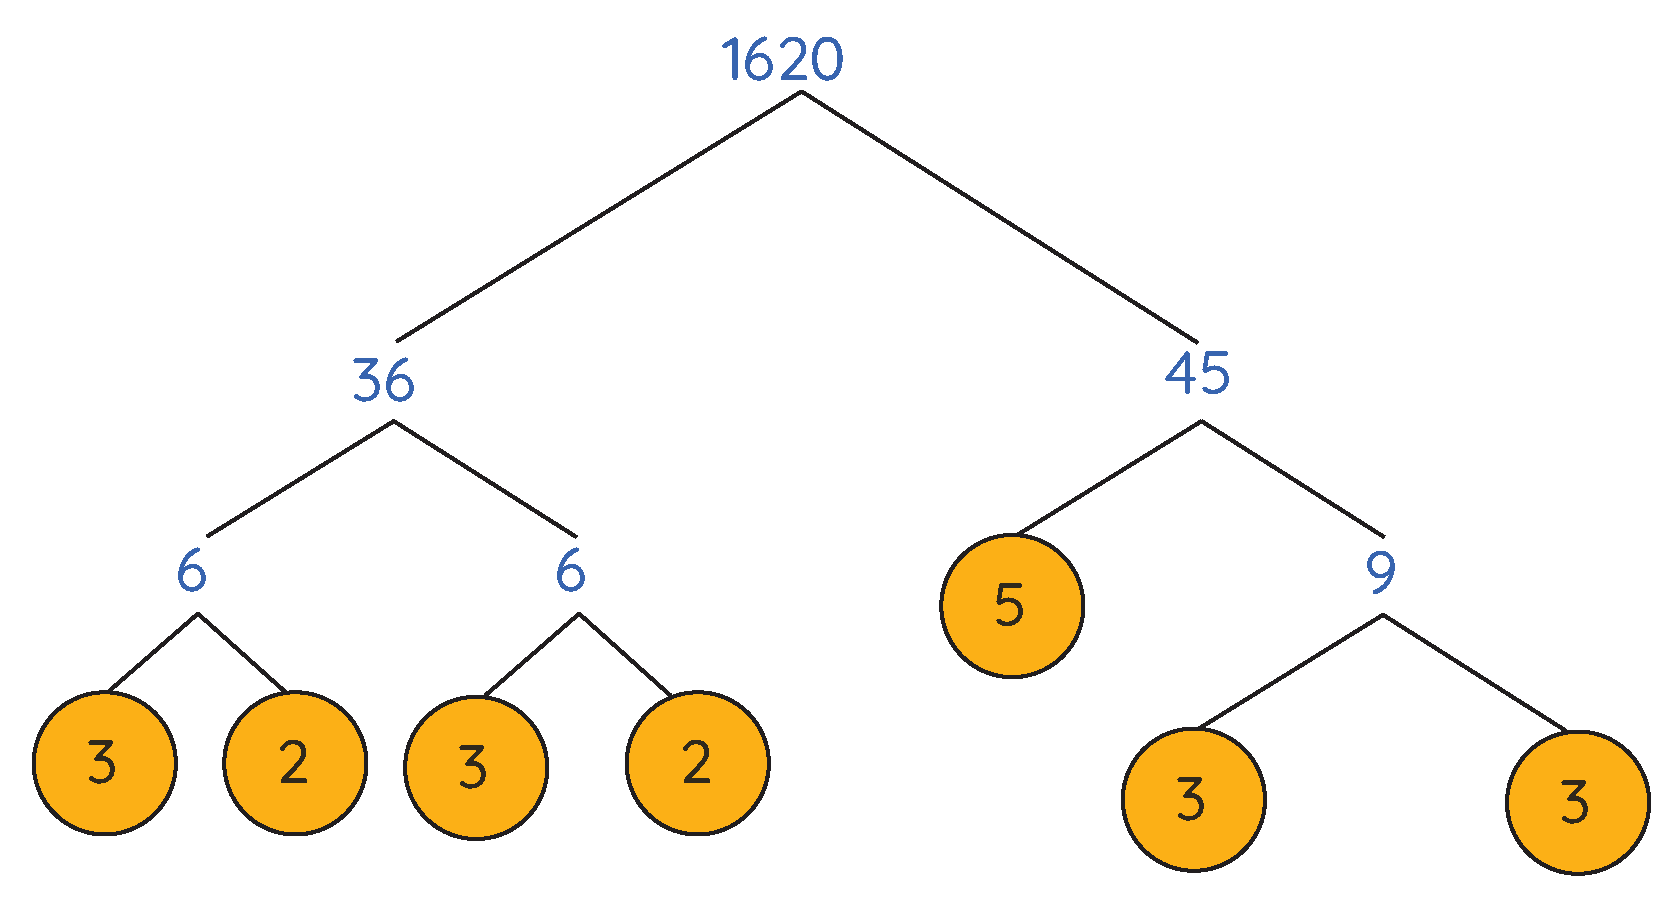 Solved Example: Number of factors of 1620